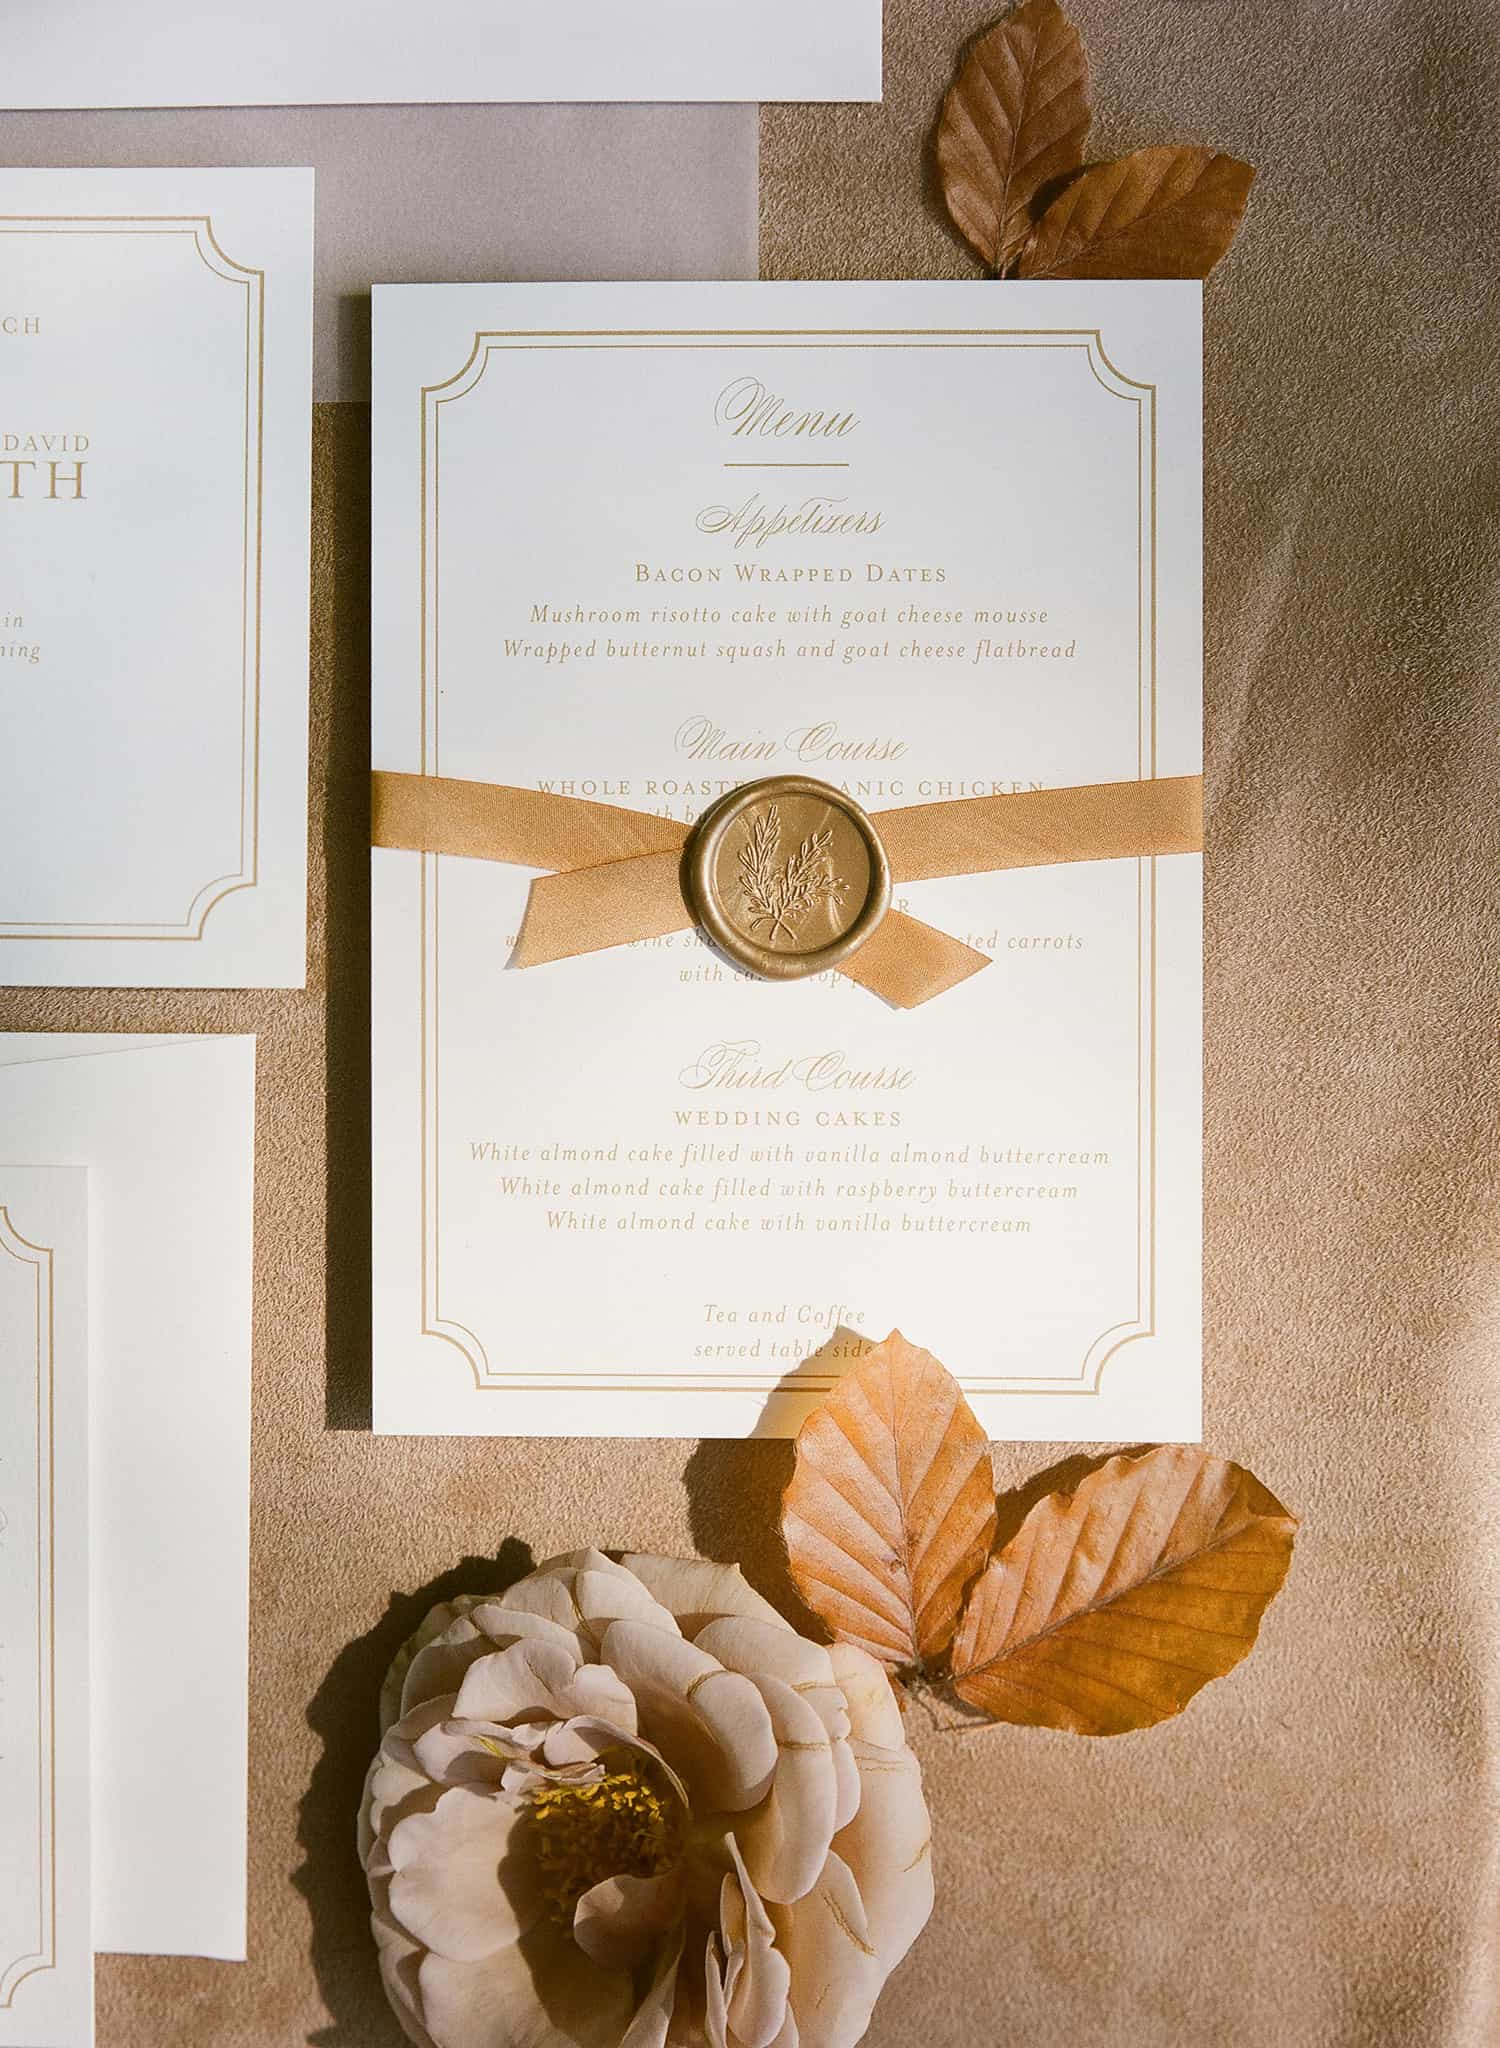 Invitations with flowers by Color Theory Collective